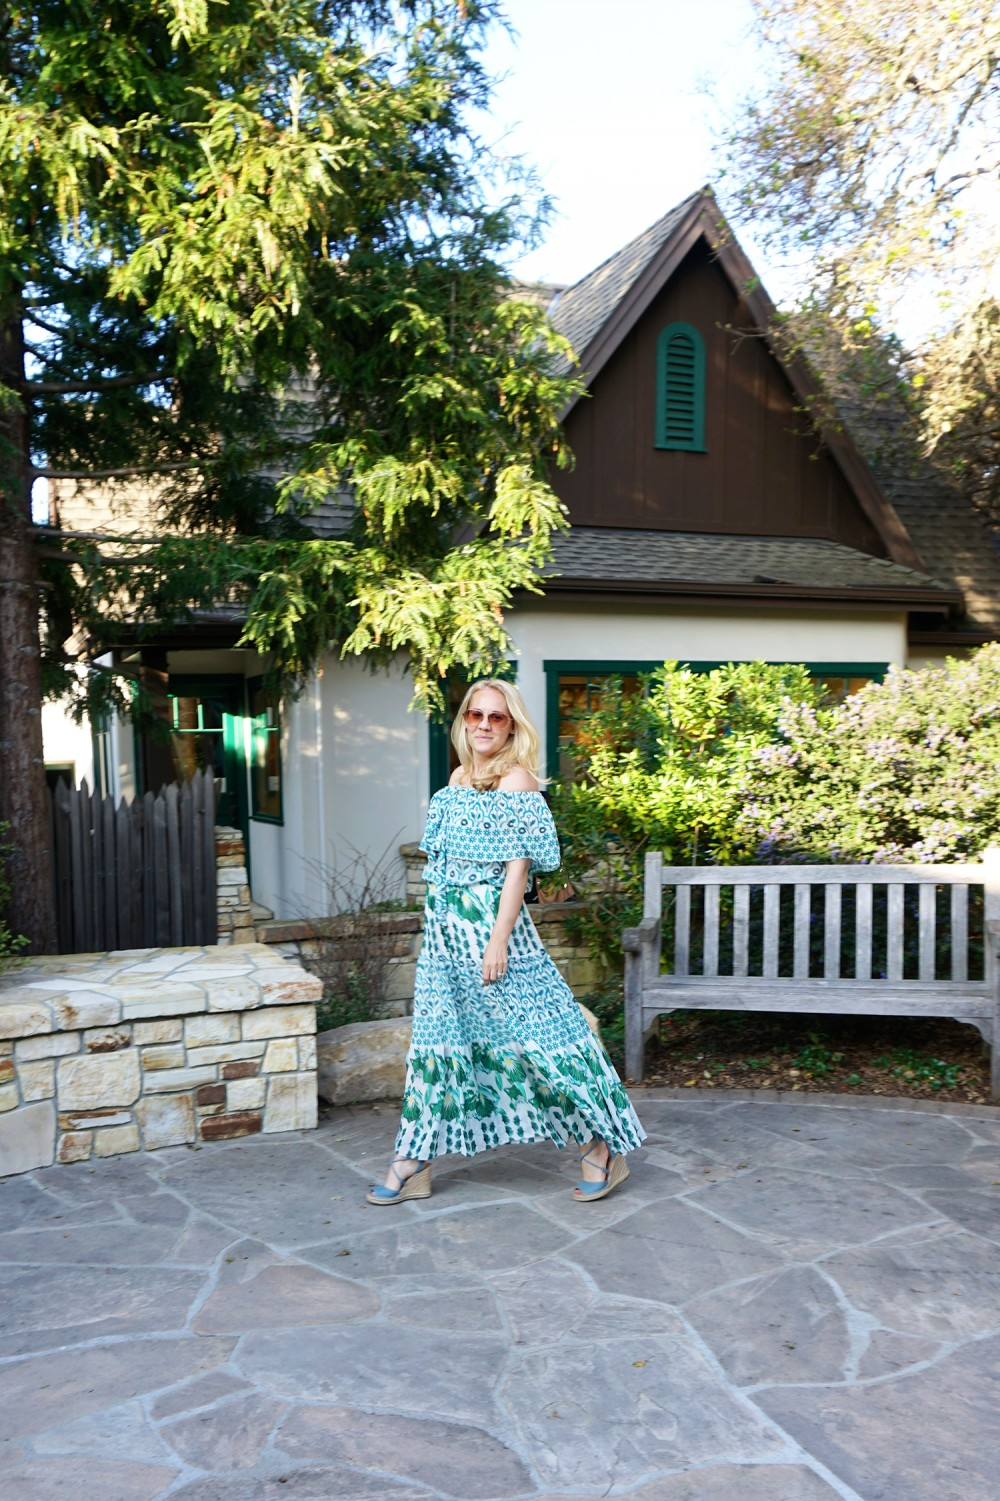 Off The Shoulder Maxi Dress-Temperley London-Outfit Inspiration-Wine Tasting-Visit Carmel by the Sea-Have Need Want